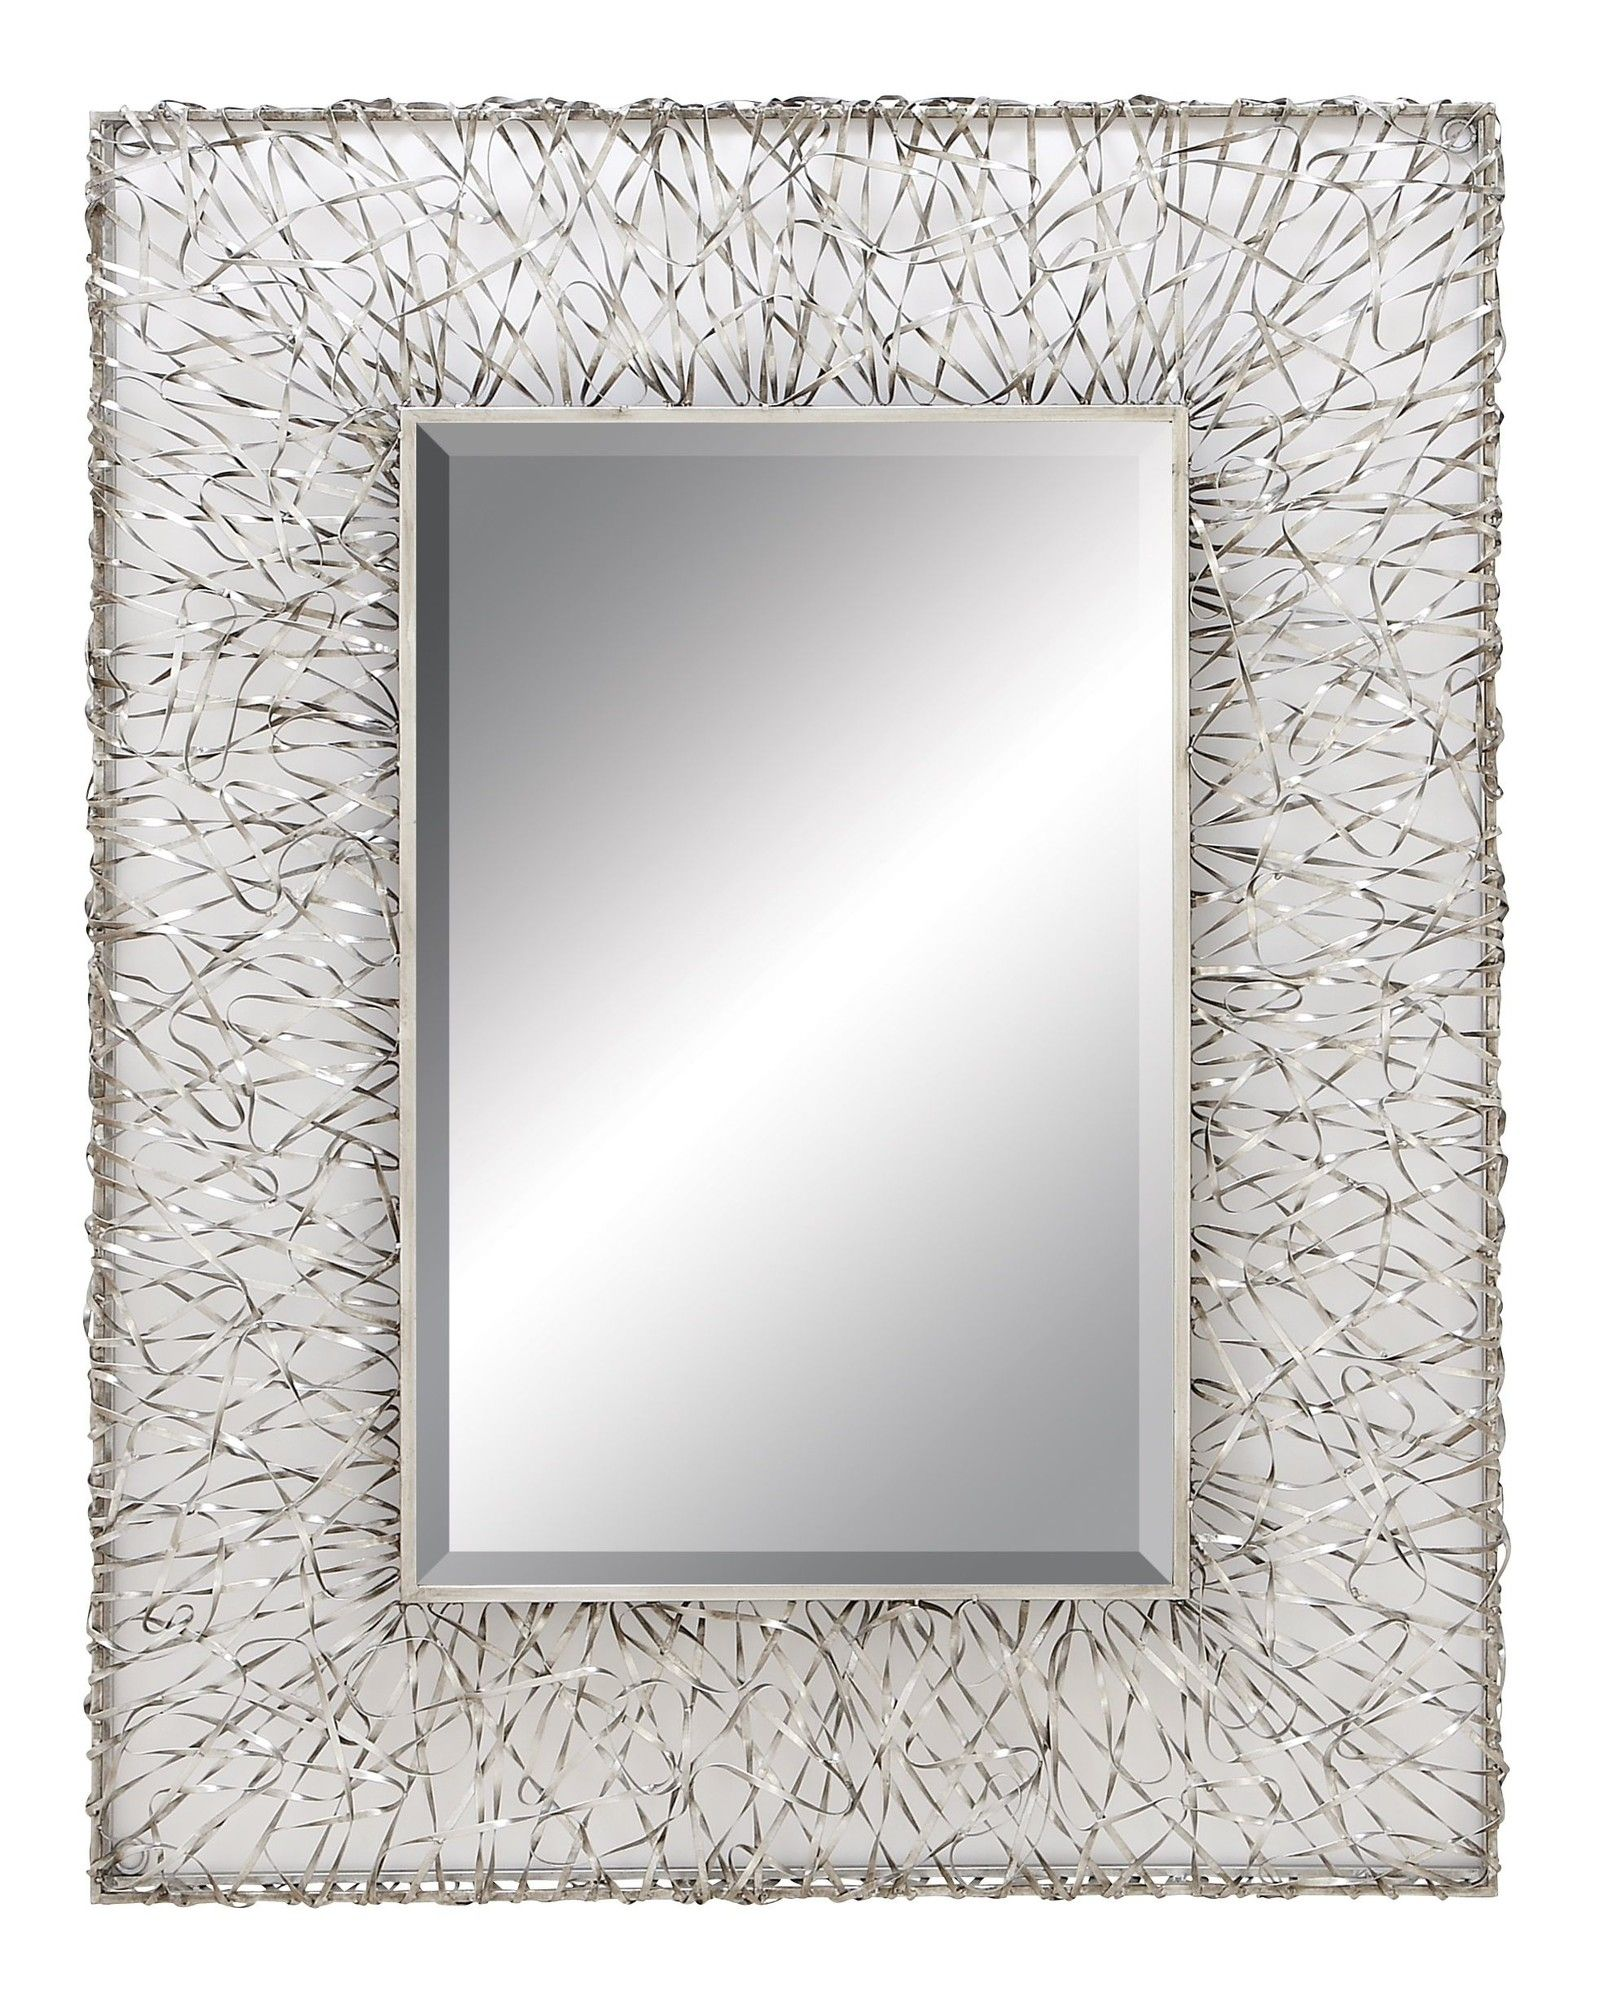 Aspire Artsy Wall Mirror & Reviews | Wayfair - for above the ...